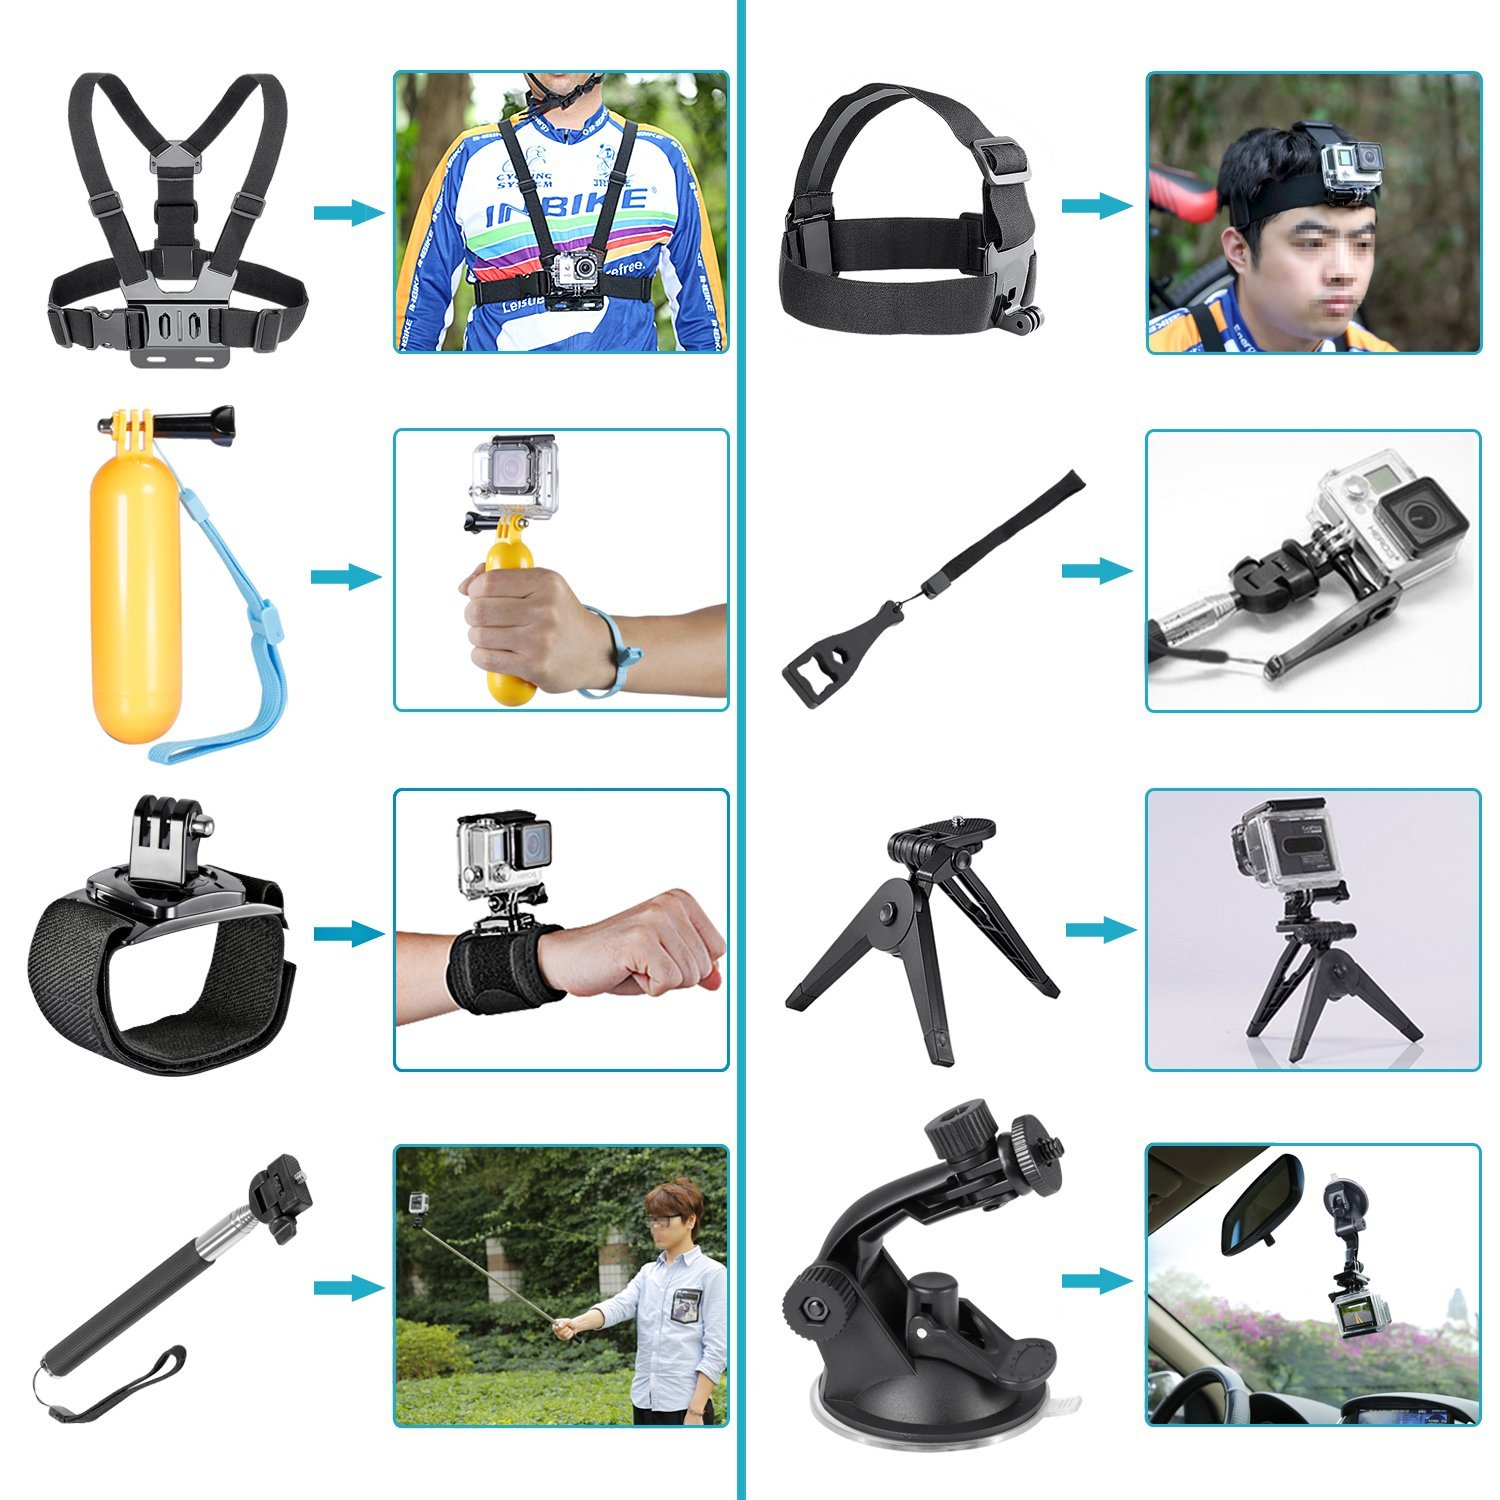 Galleria fotografica CES-24-in-1 Sport Accessory Kit for GoPro Hero4 Session Hero Series for Xiaomi Yi in Skiing Climbing Bike Camping Diving and CES